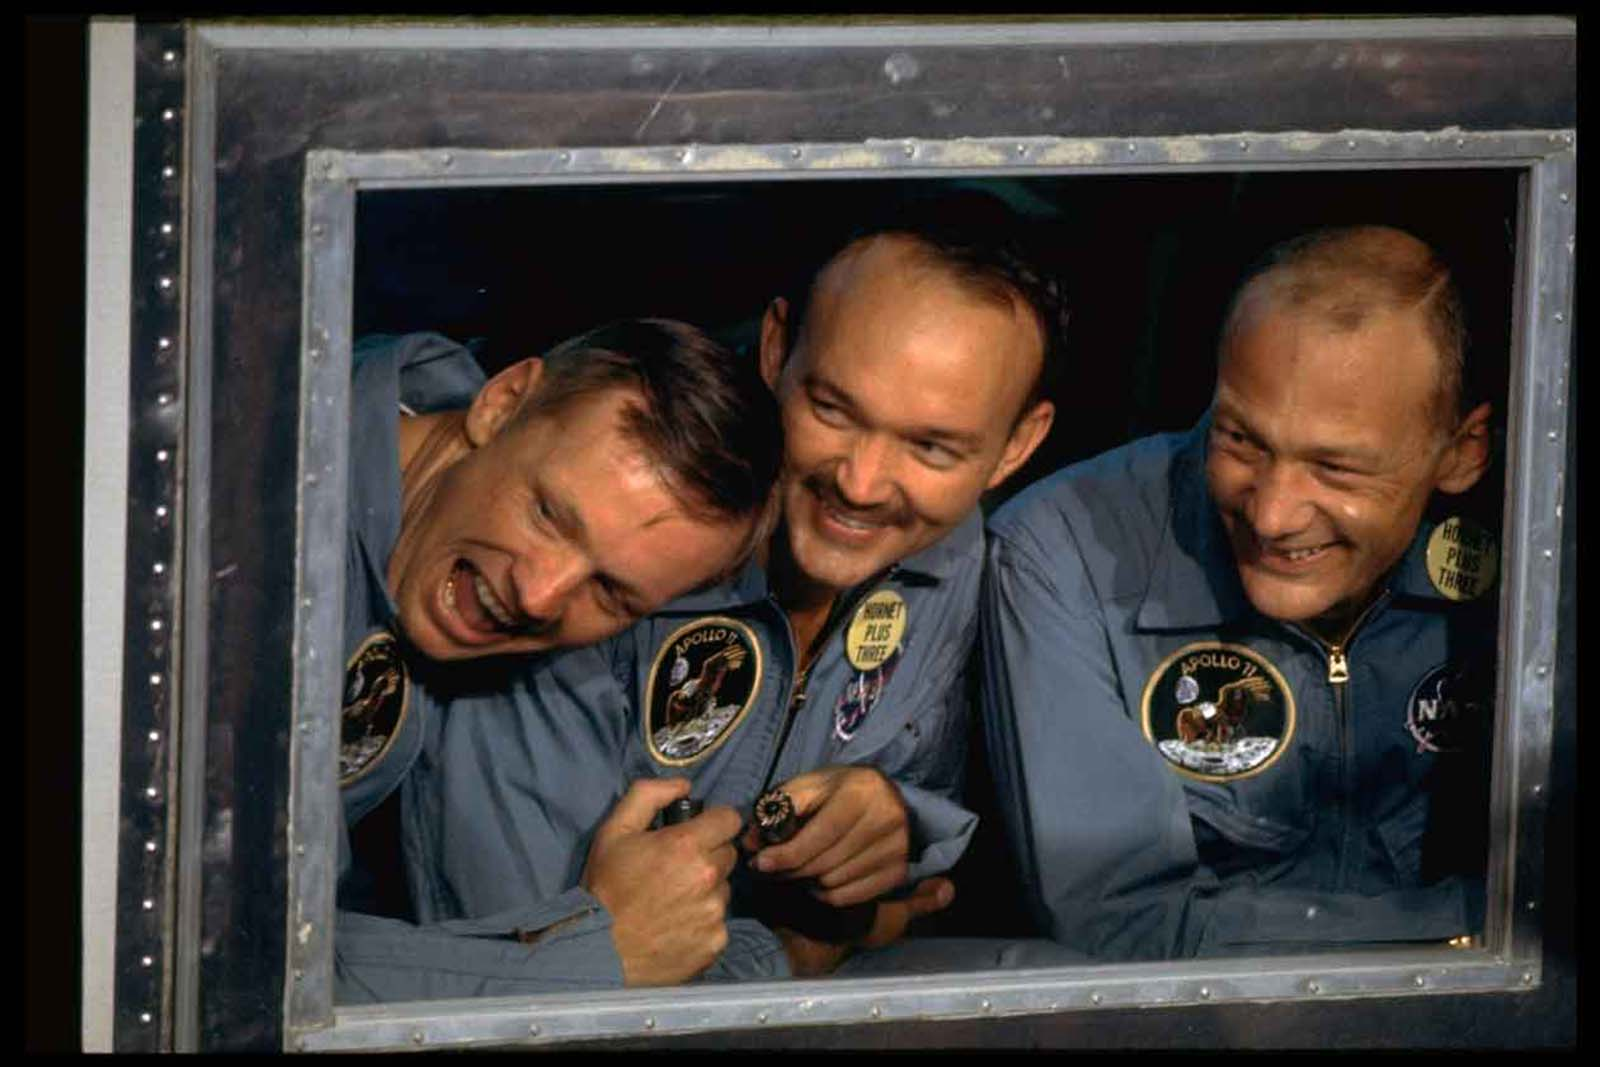 Apollo 11 astronauts (R-L) Aldrin, Collins, & Armstrong peering out window of quarantine room aboard recovery ship Hornet following splashdown fr. historic moon mission.